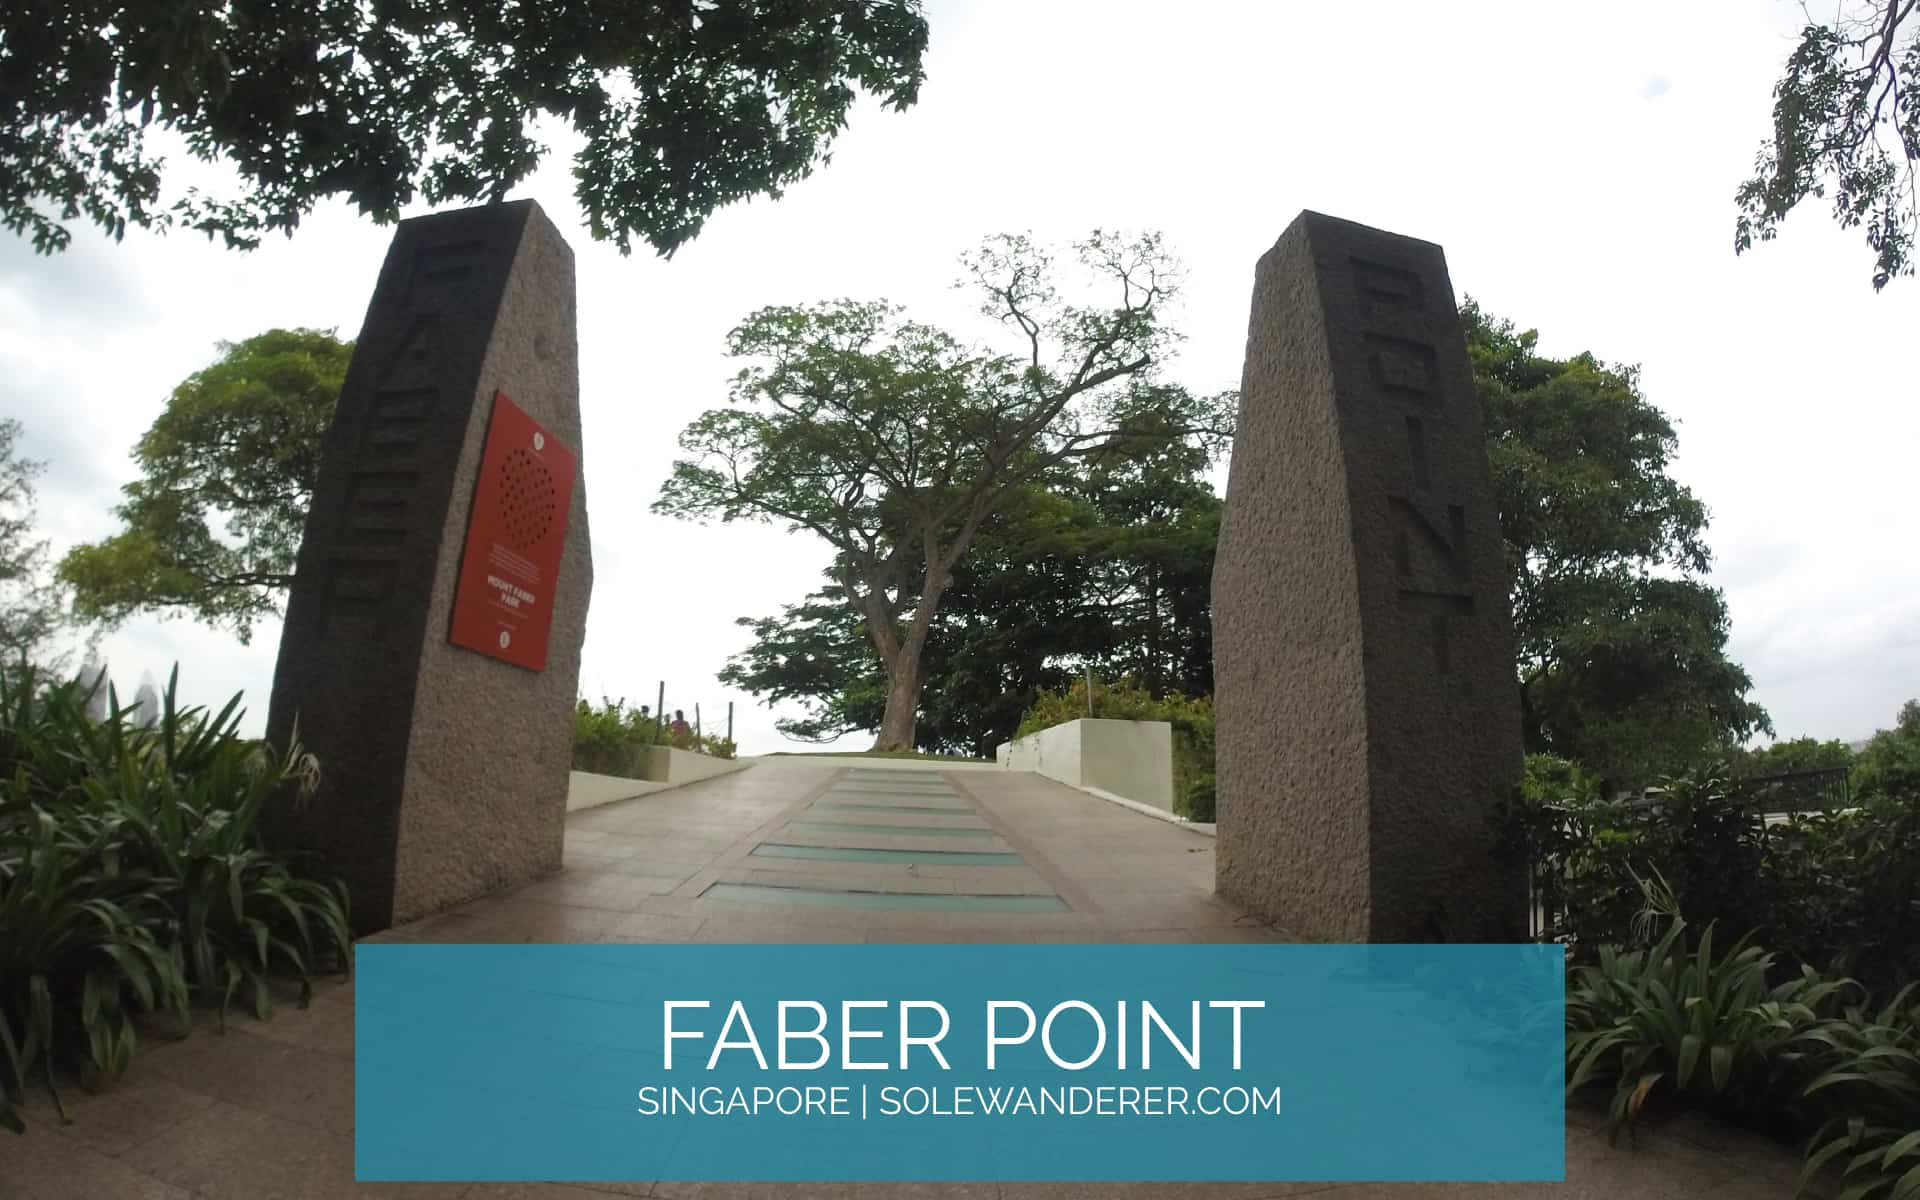 Faber Point Singapore -The Sole Wanderer